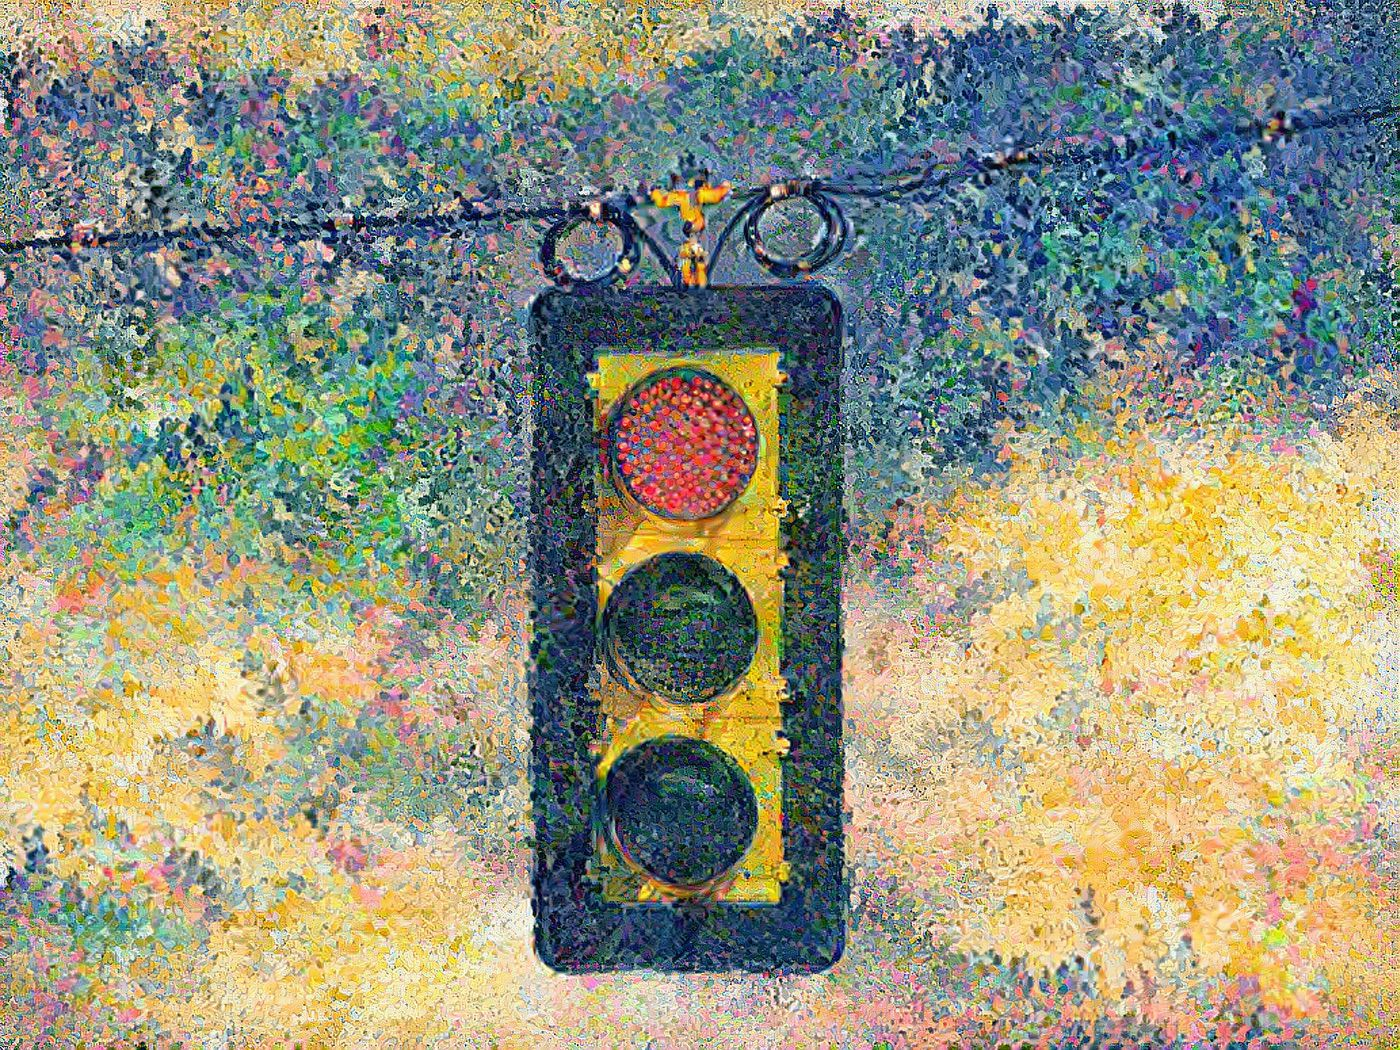 AI painting of a red light